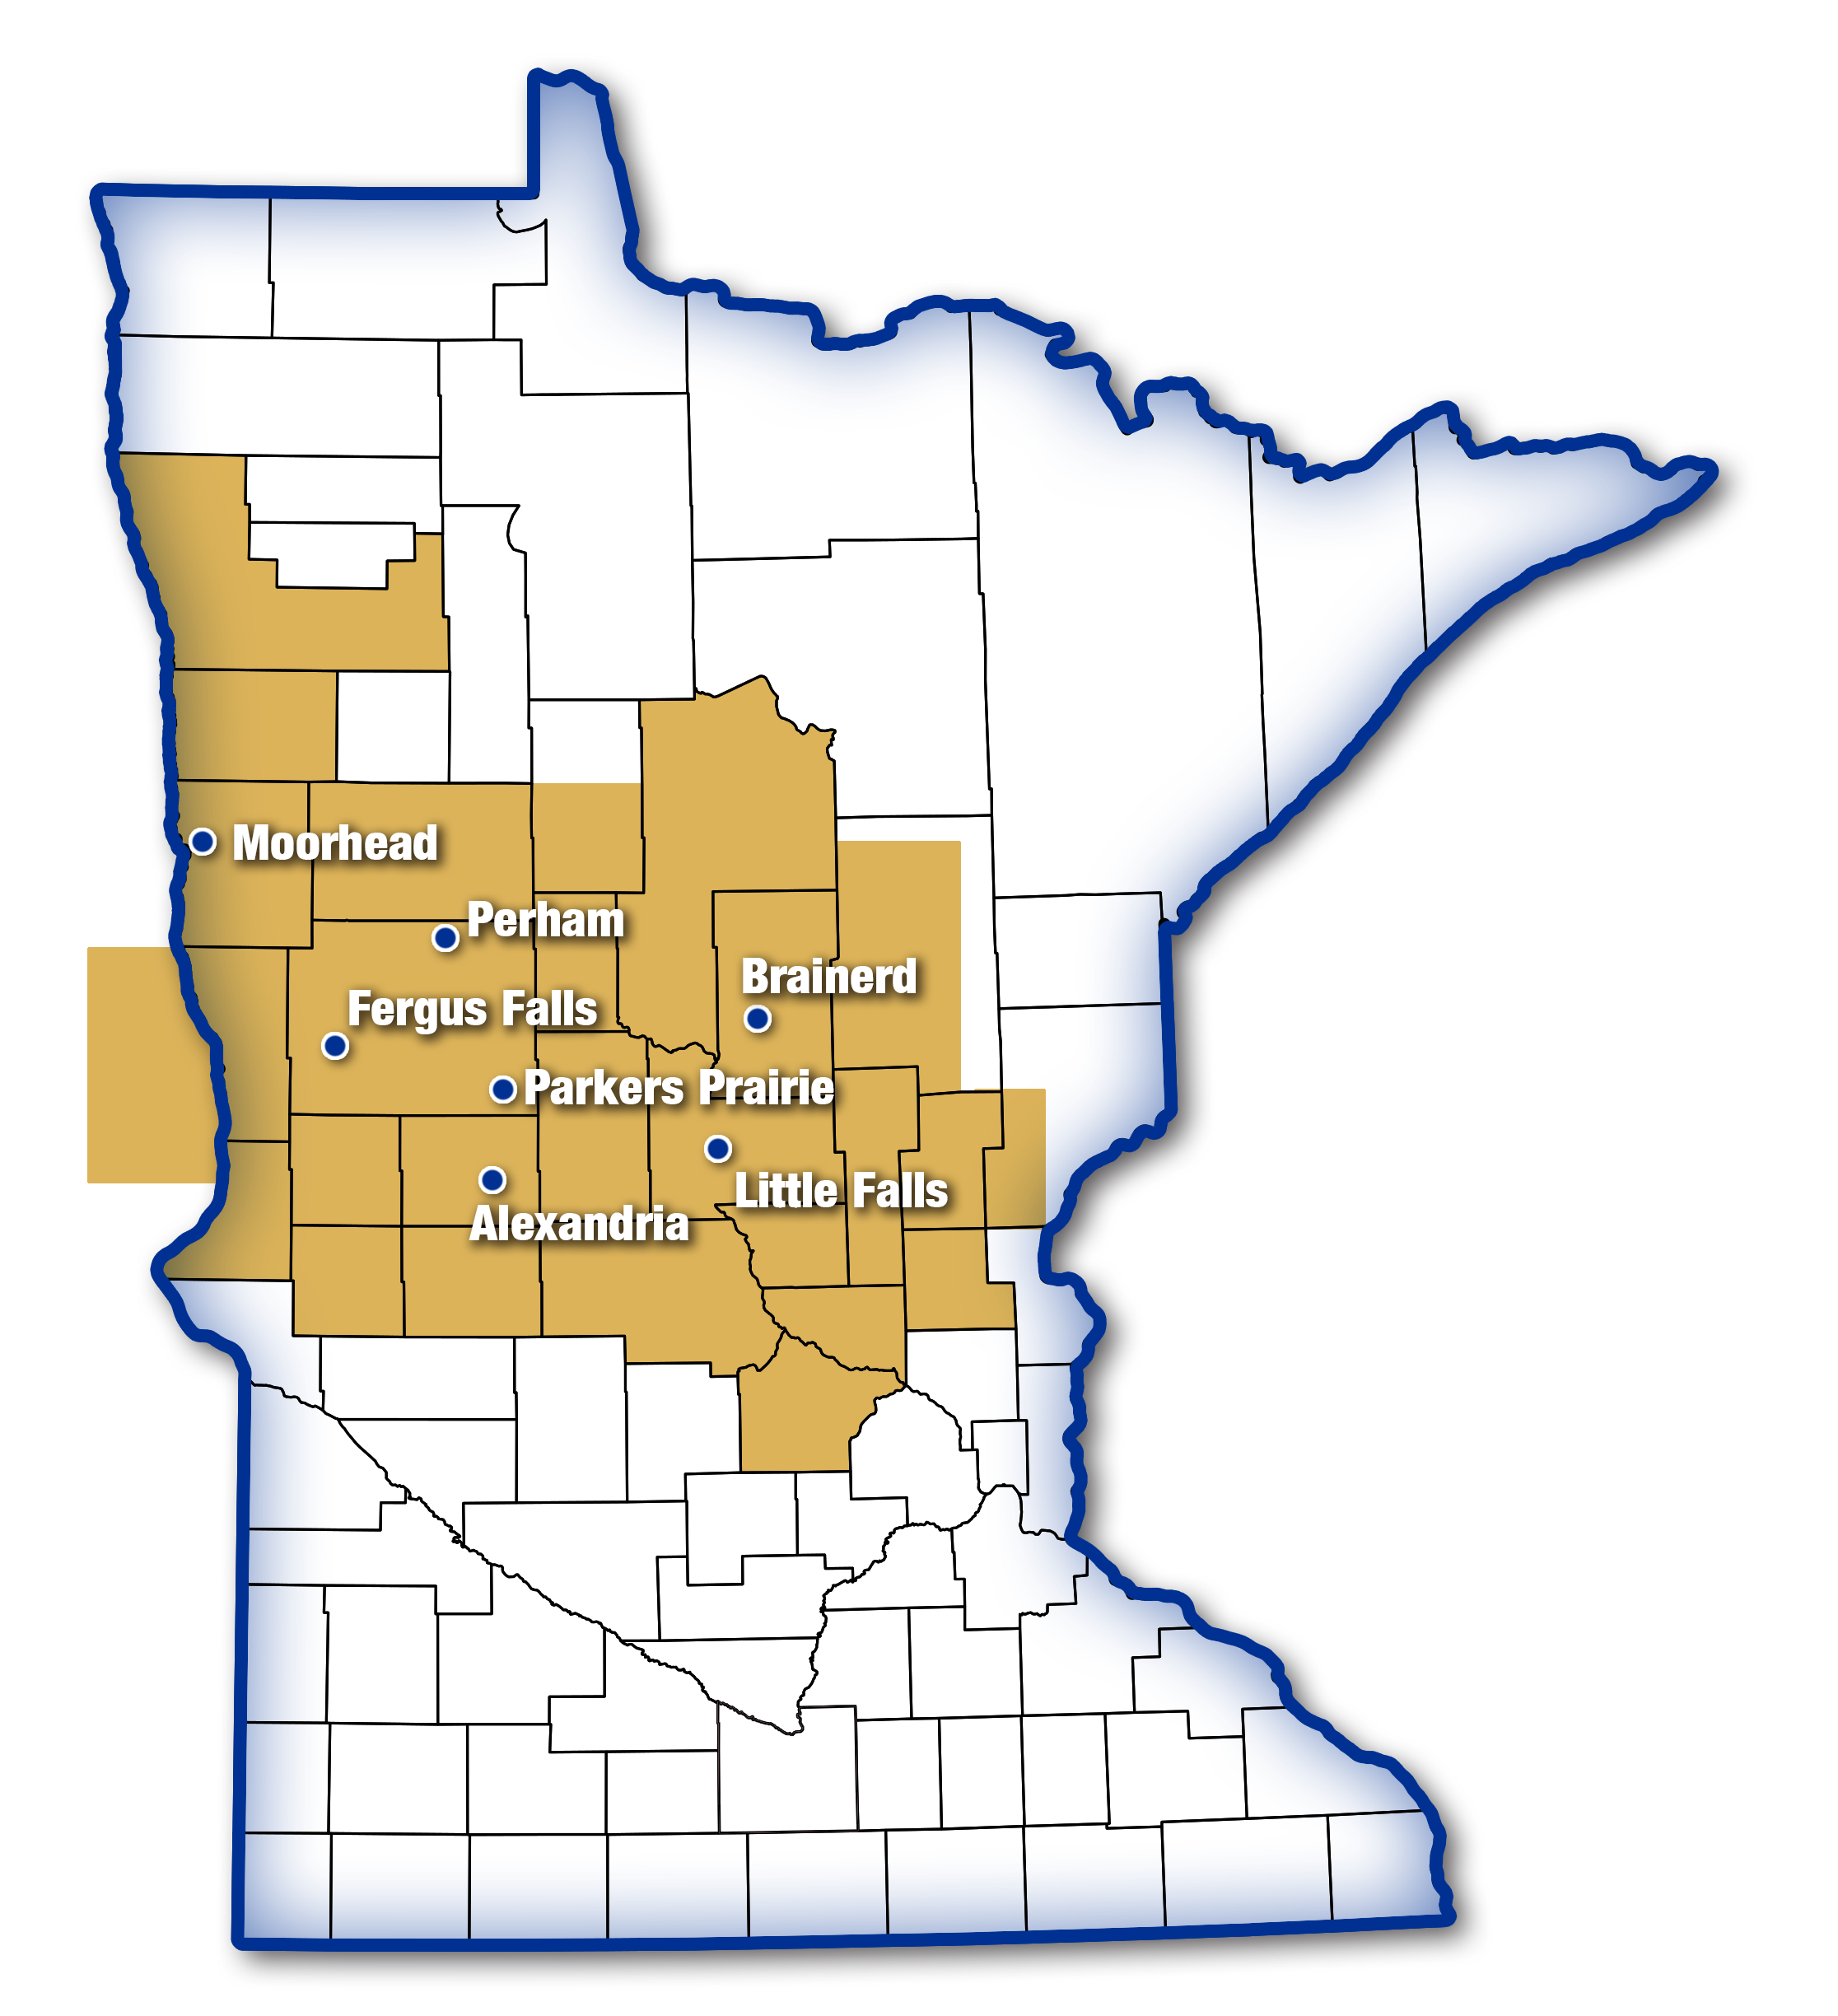 This is a map of the State of Minnesota showing the area where Productive Alternatives serves clients and employers.